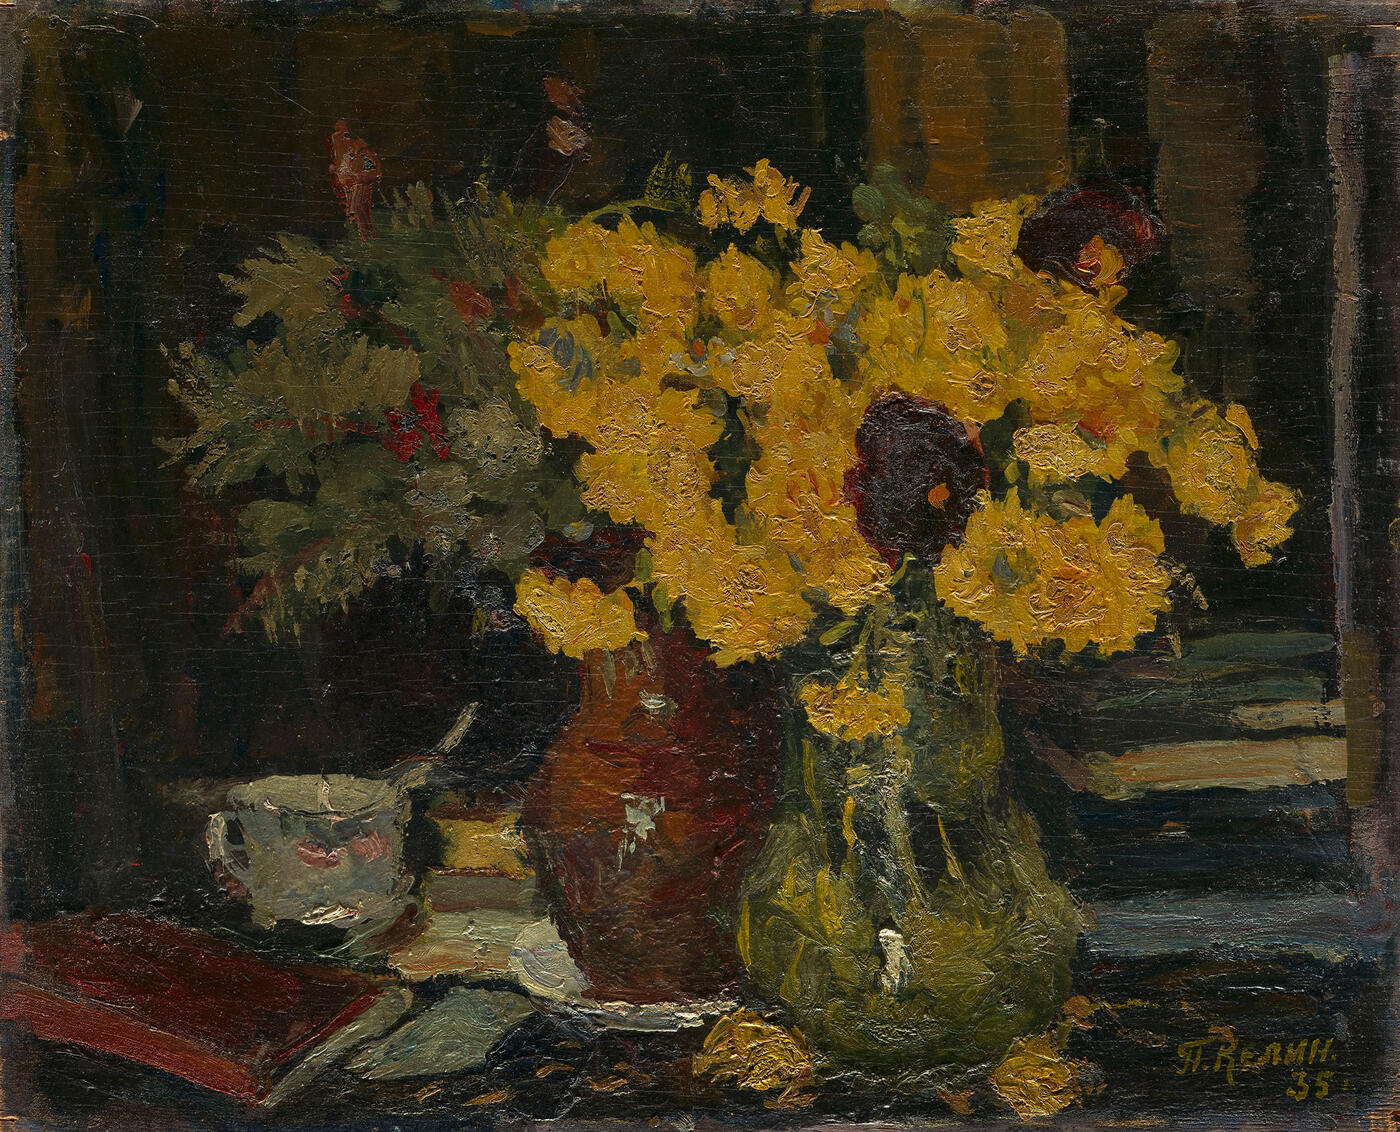 Still Life with Flowers and Books